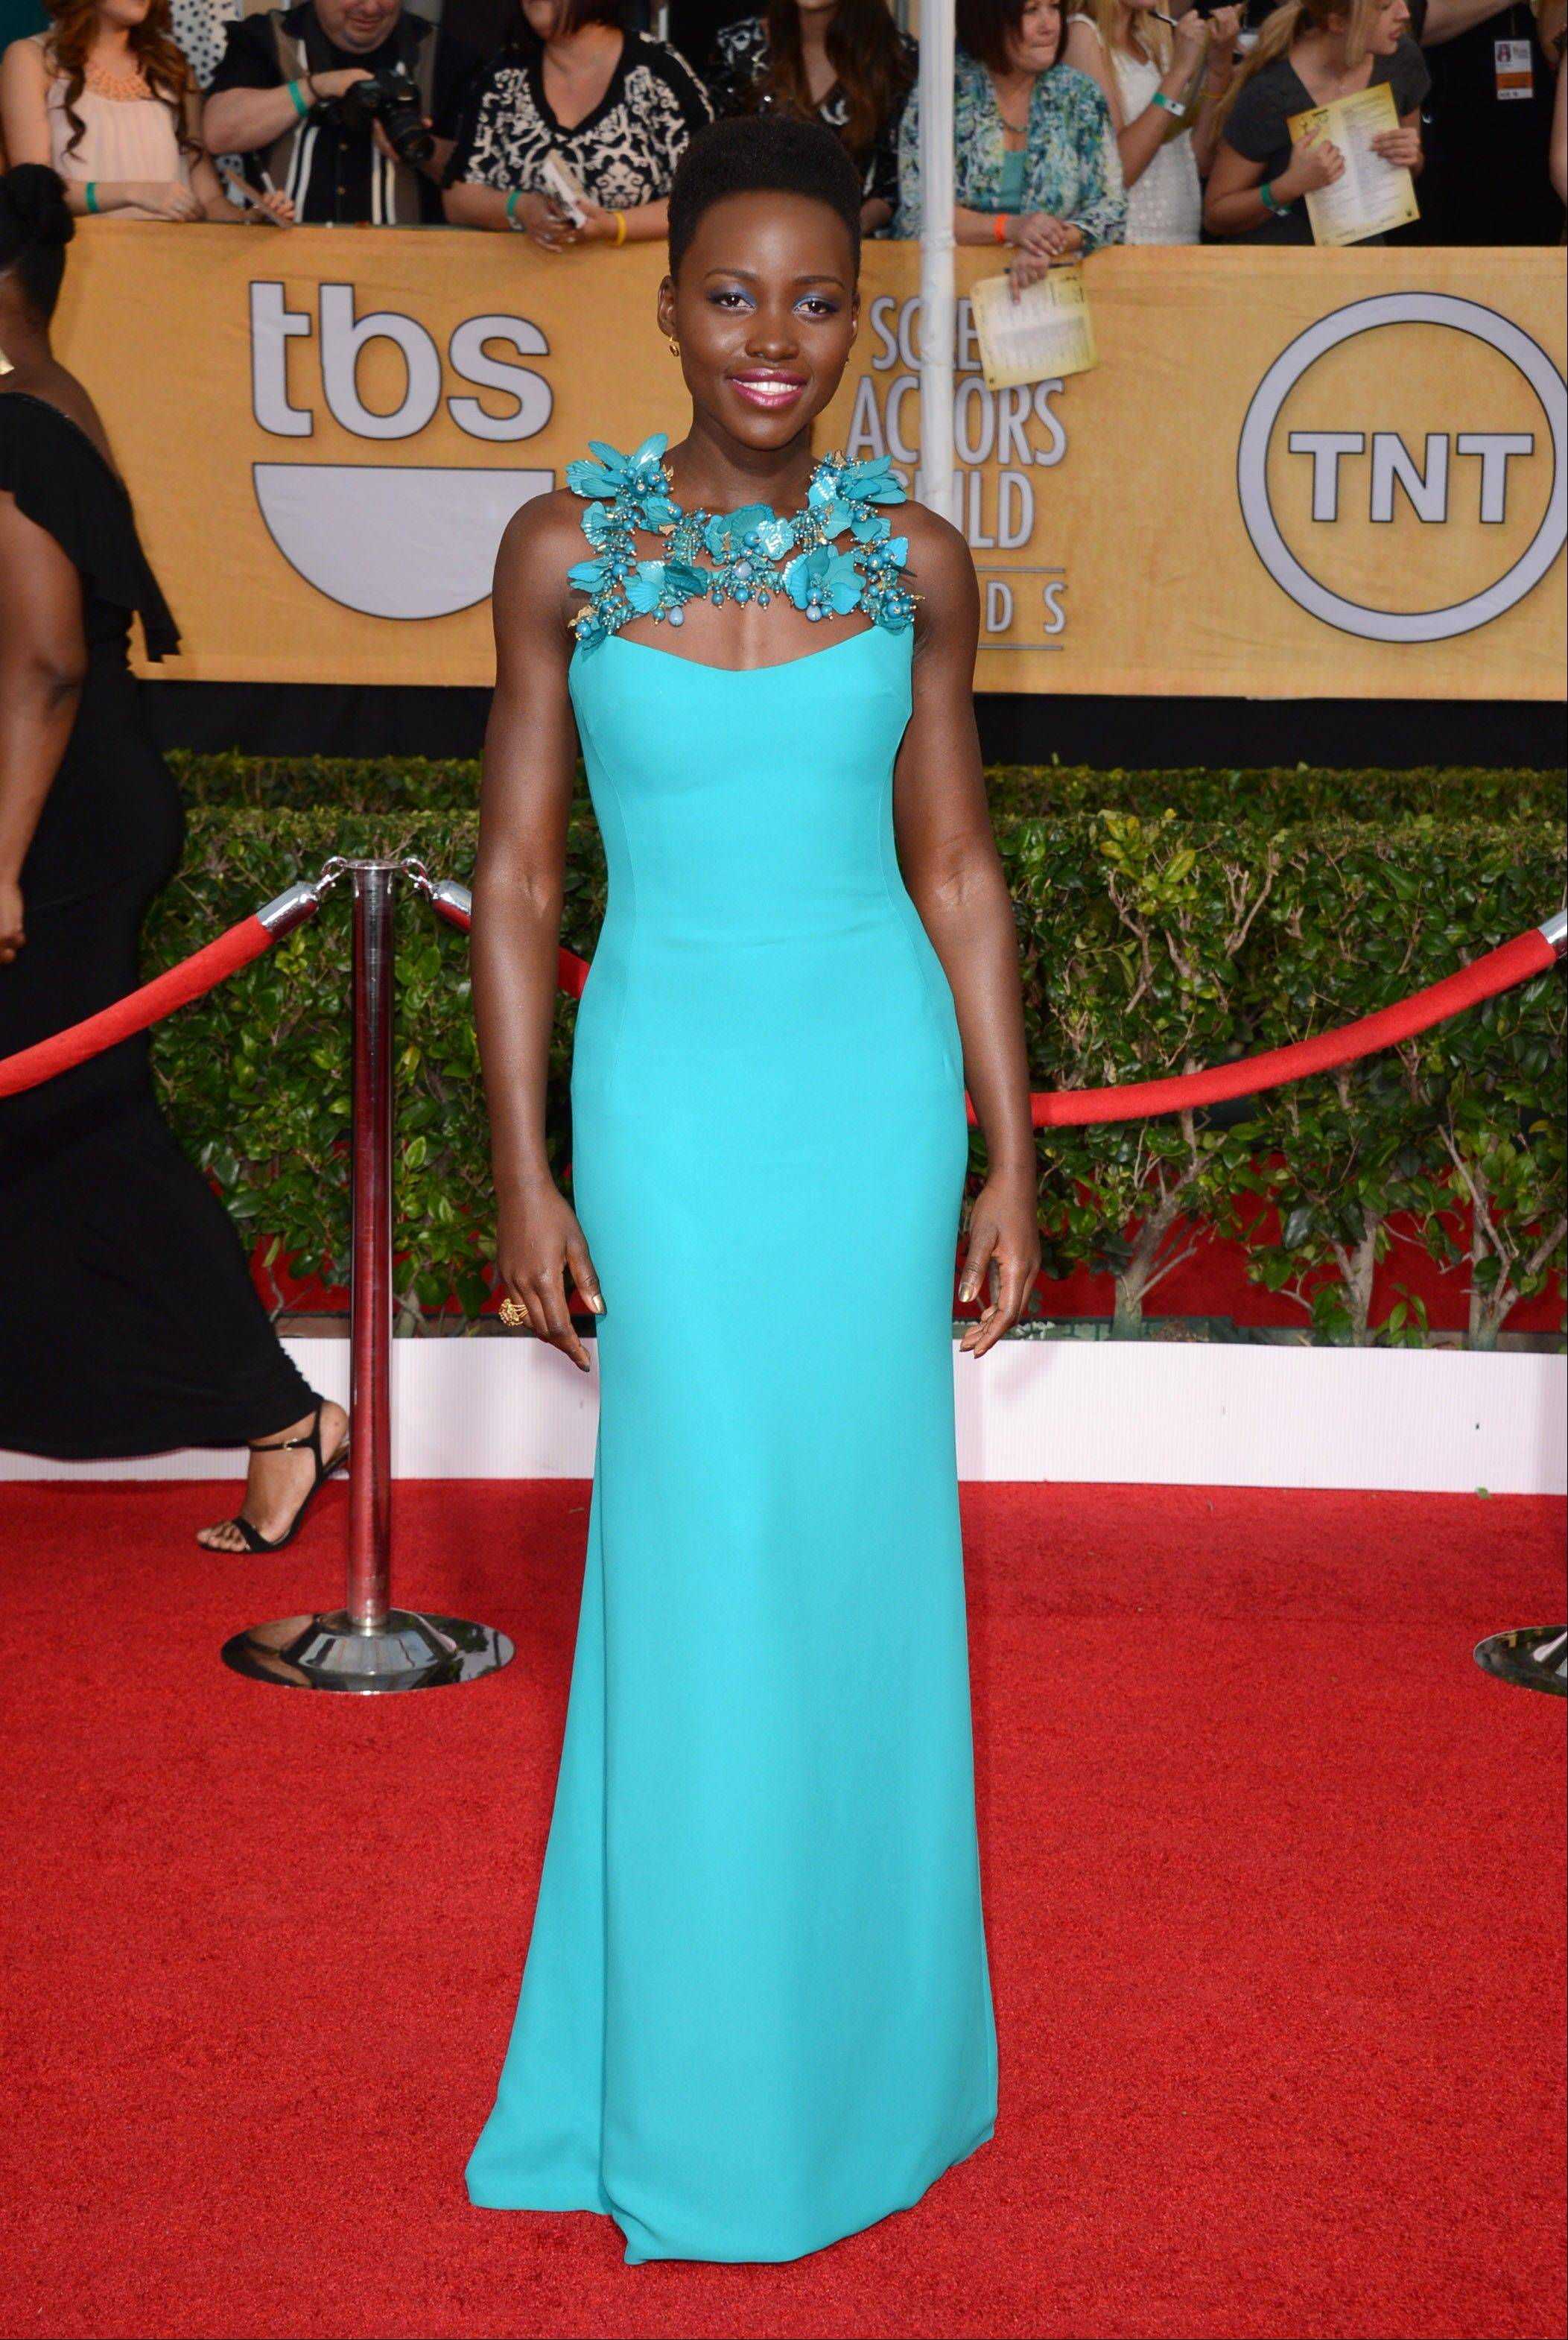 Lupita Nyong'o arrives at the 20th annual Screen Actors Guild Awards.